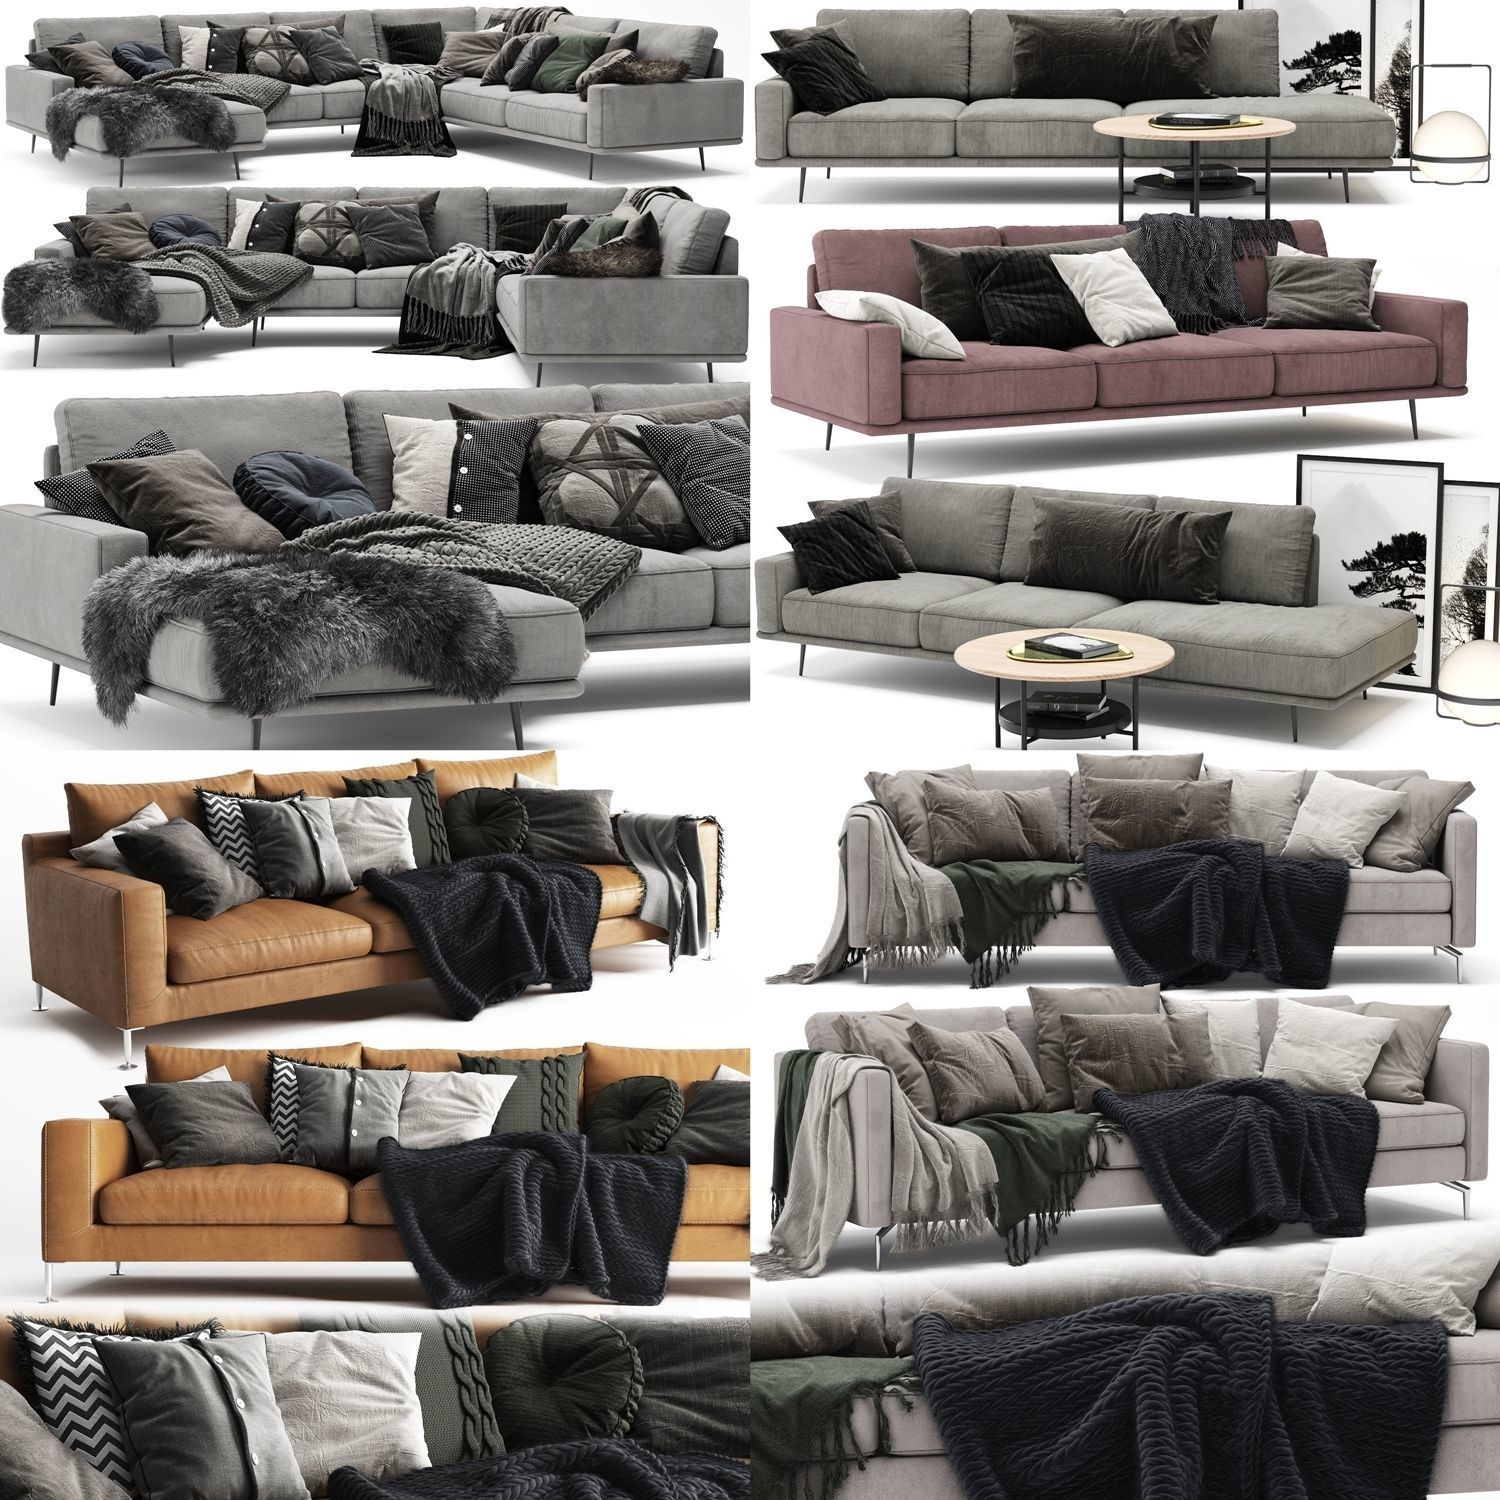 Sofa Collection 01 - 5 Items